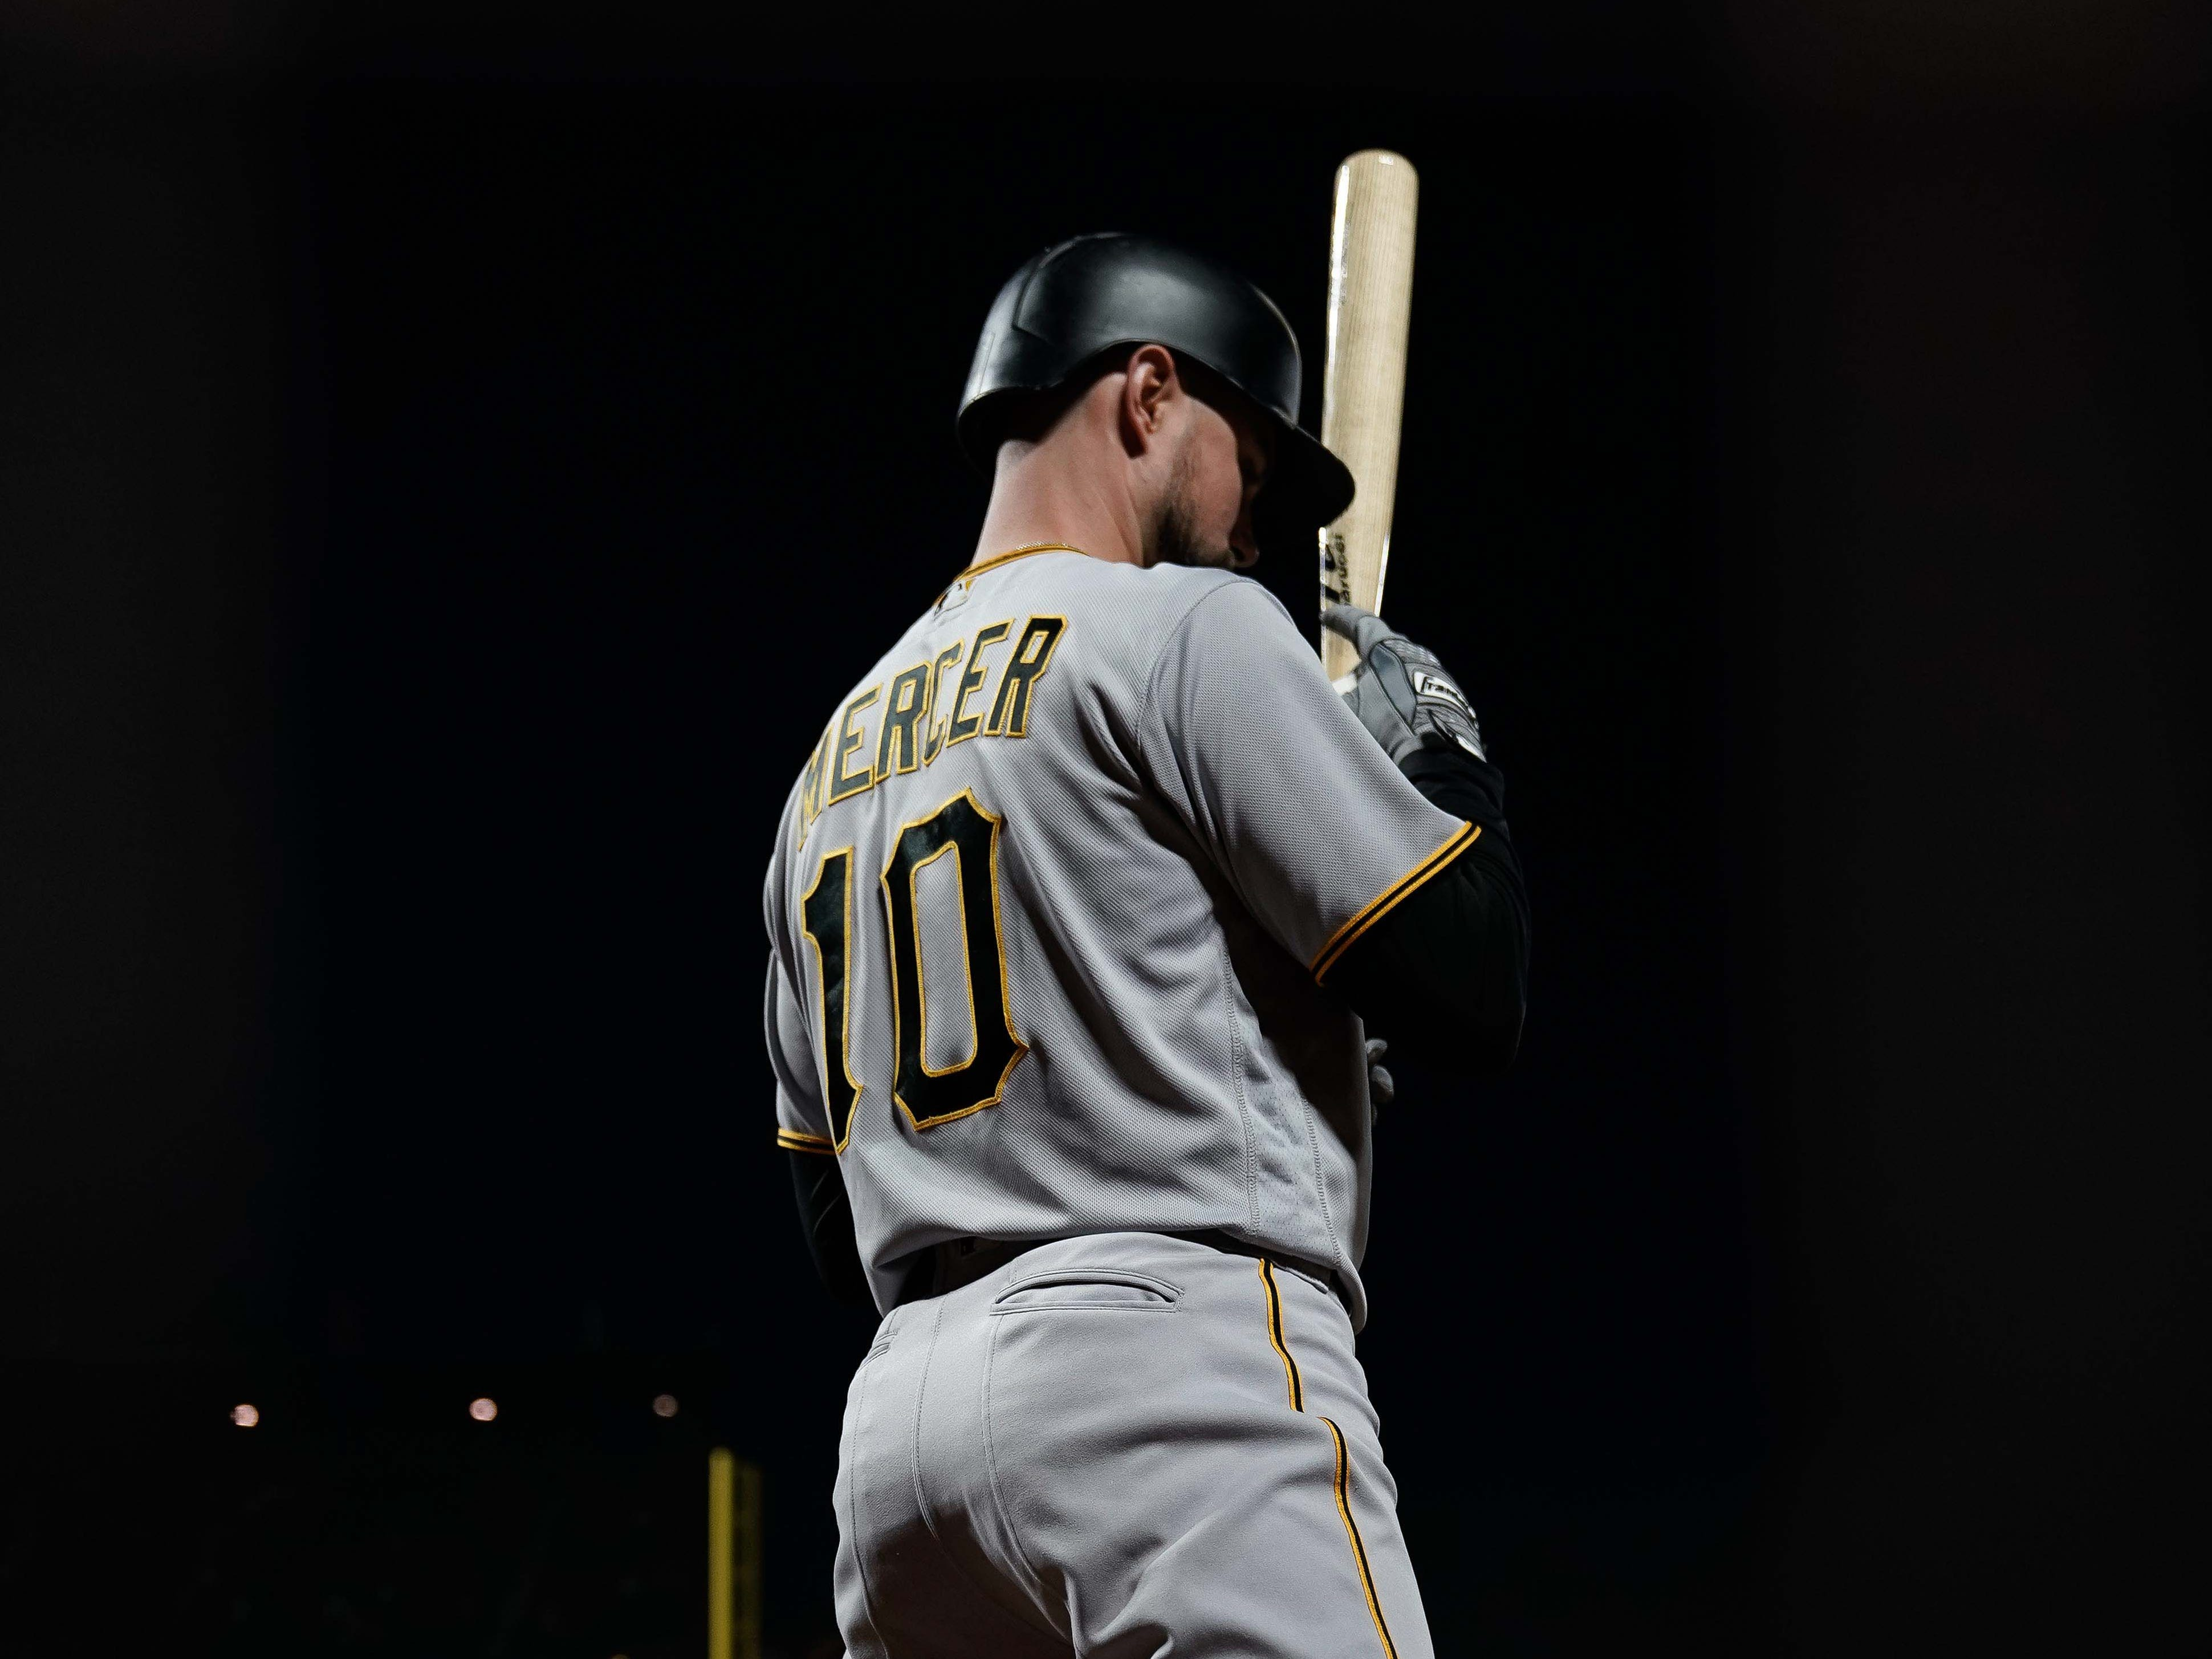 Pittsburgh Pirates shortstop Jordy Mercer warms up before his at-bat against the San Francisco Giants at AT&T Park, Aug. 10, 2018.